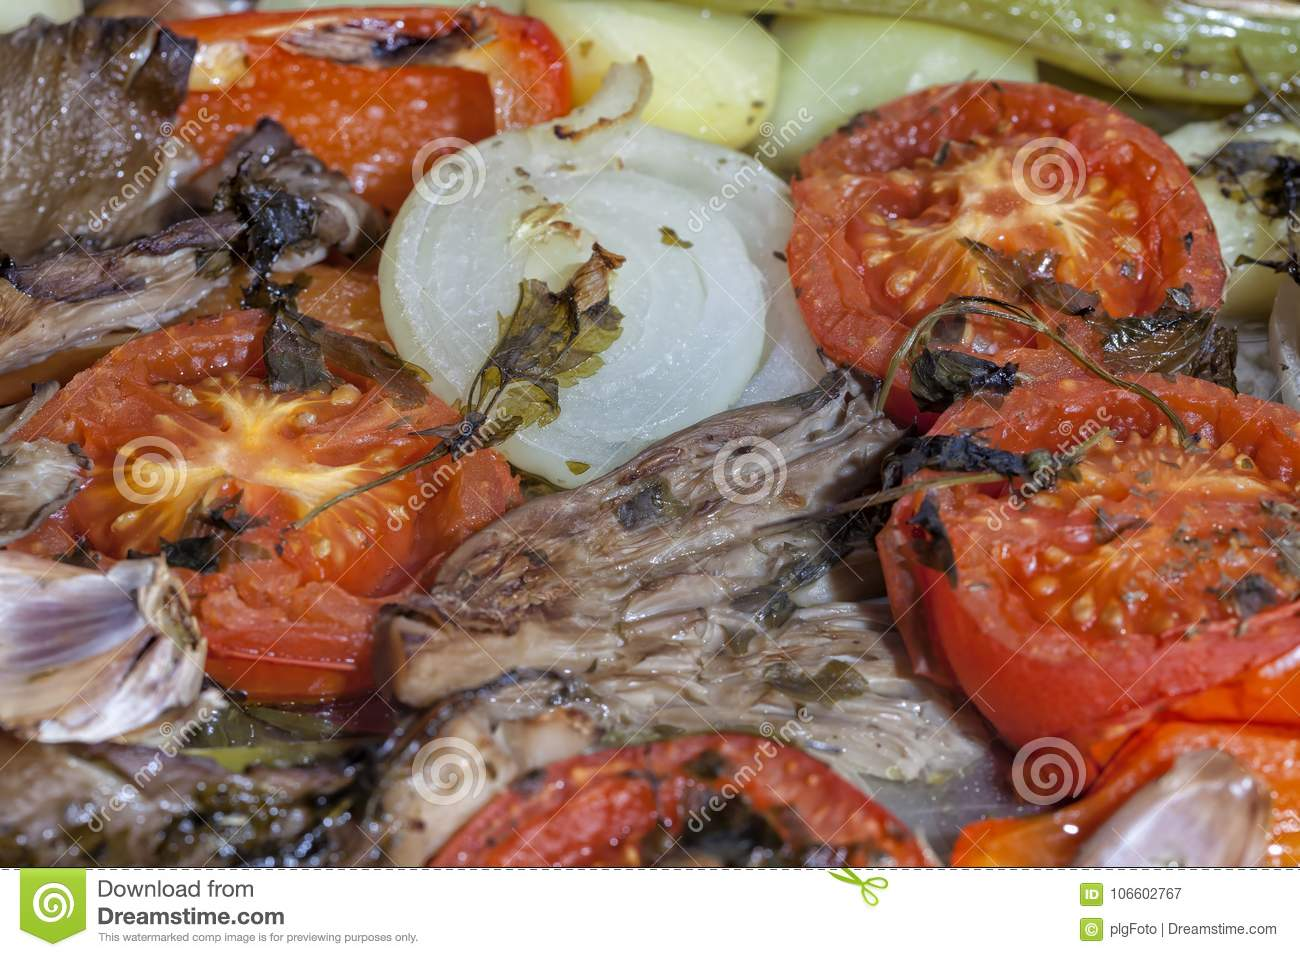 The accompanying vegetables have already been cooked a little